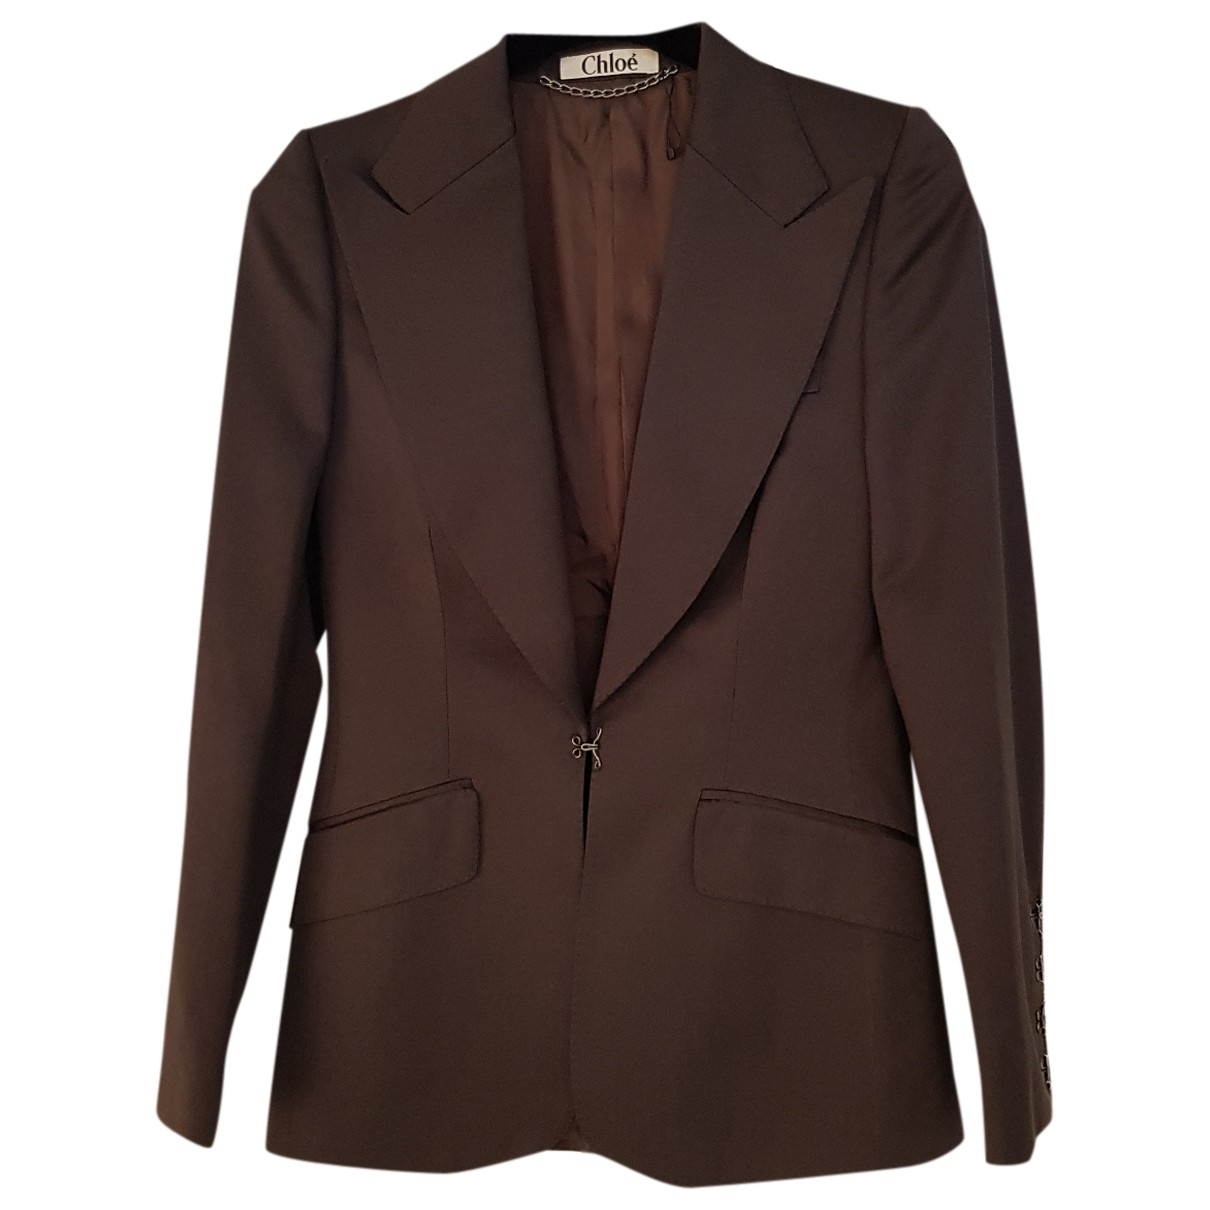 Chloé \N Brown Wool jacket for Women 40 FR